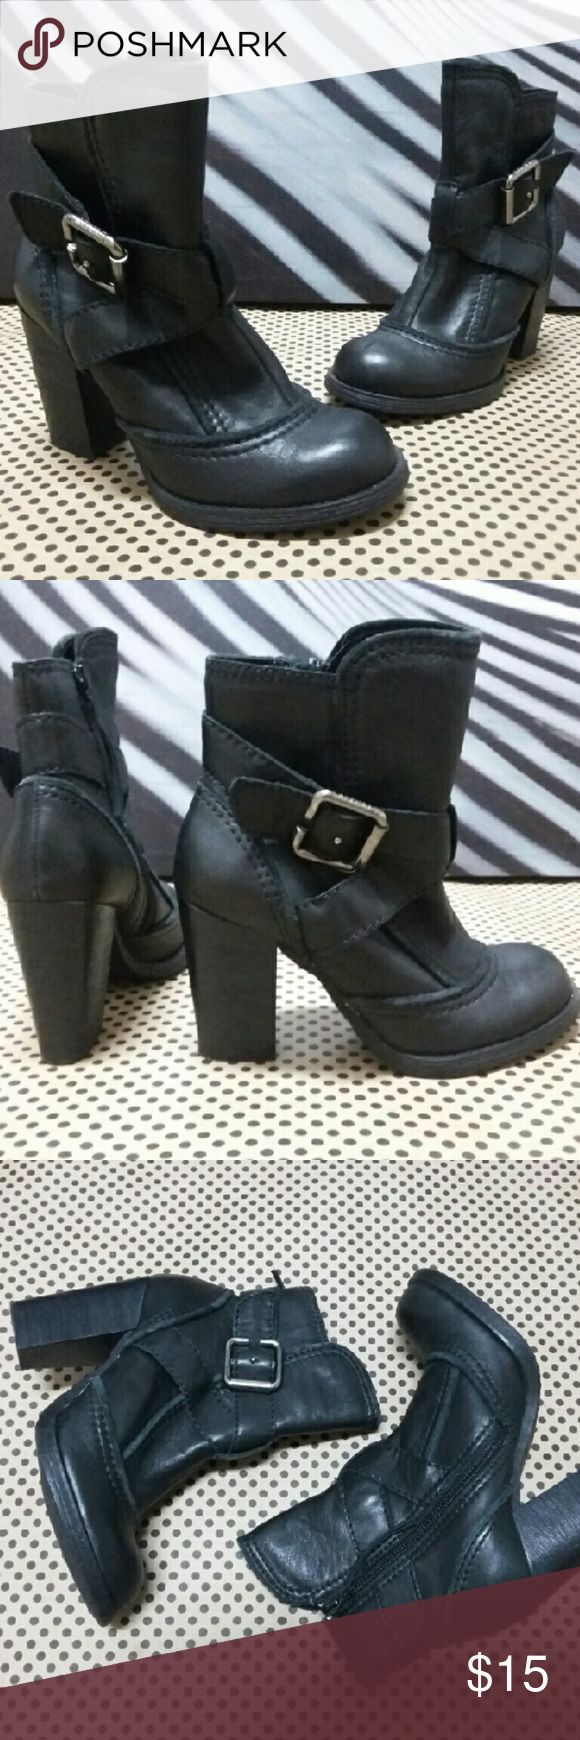 Report...leather boots booties sz 6 Report...leather boots booties sz 6...Very Nice LEATHER Ankle boots...Excellent Used condition Report Shoes Ankle Boots & Booties